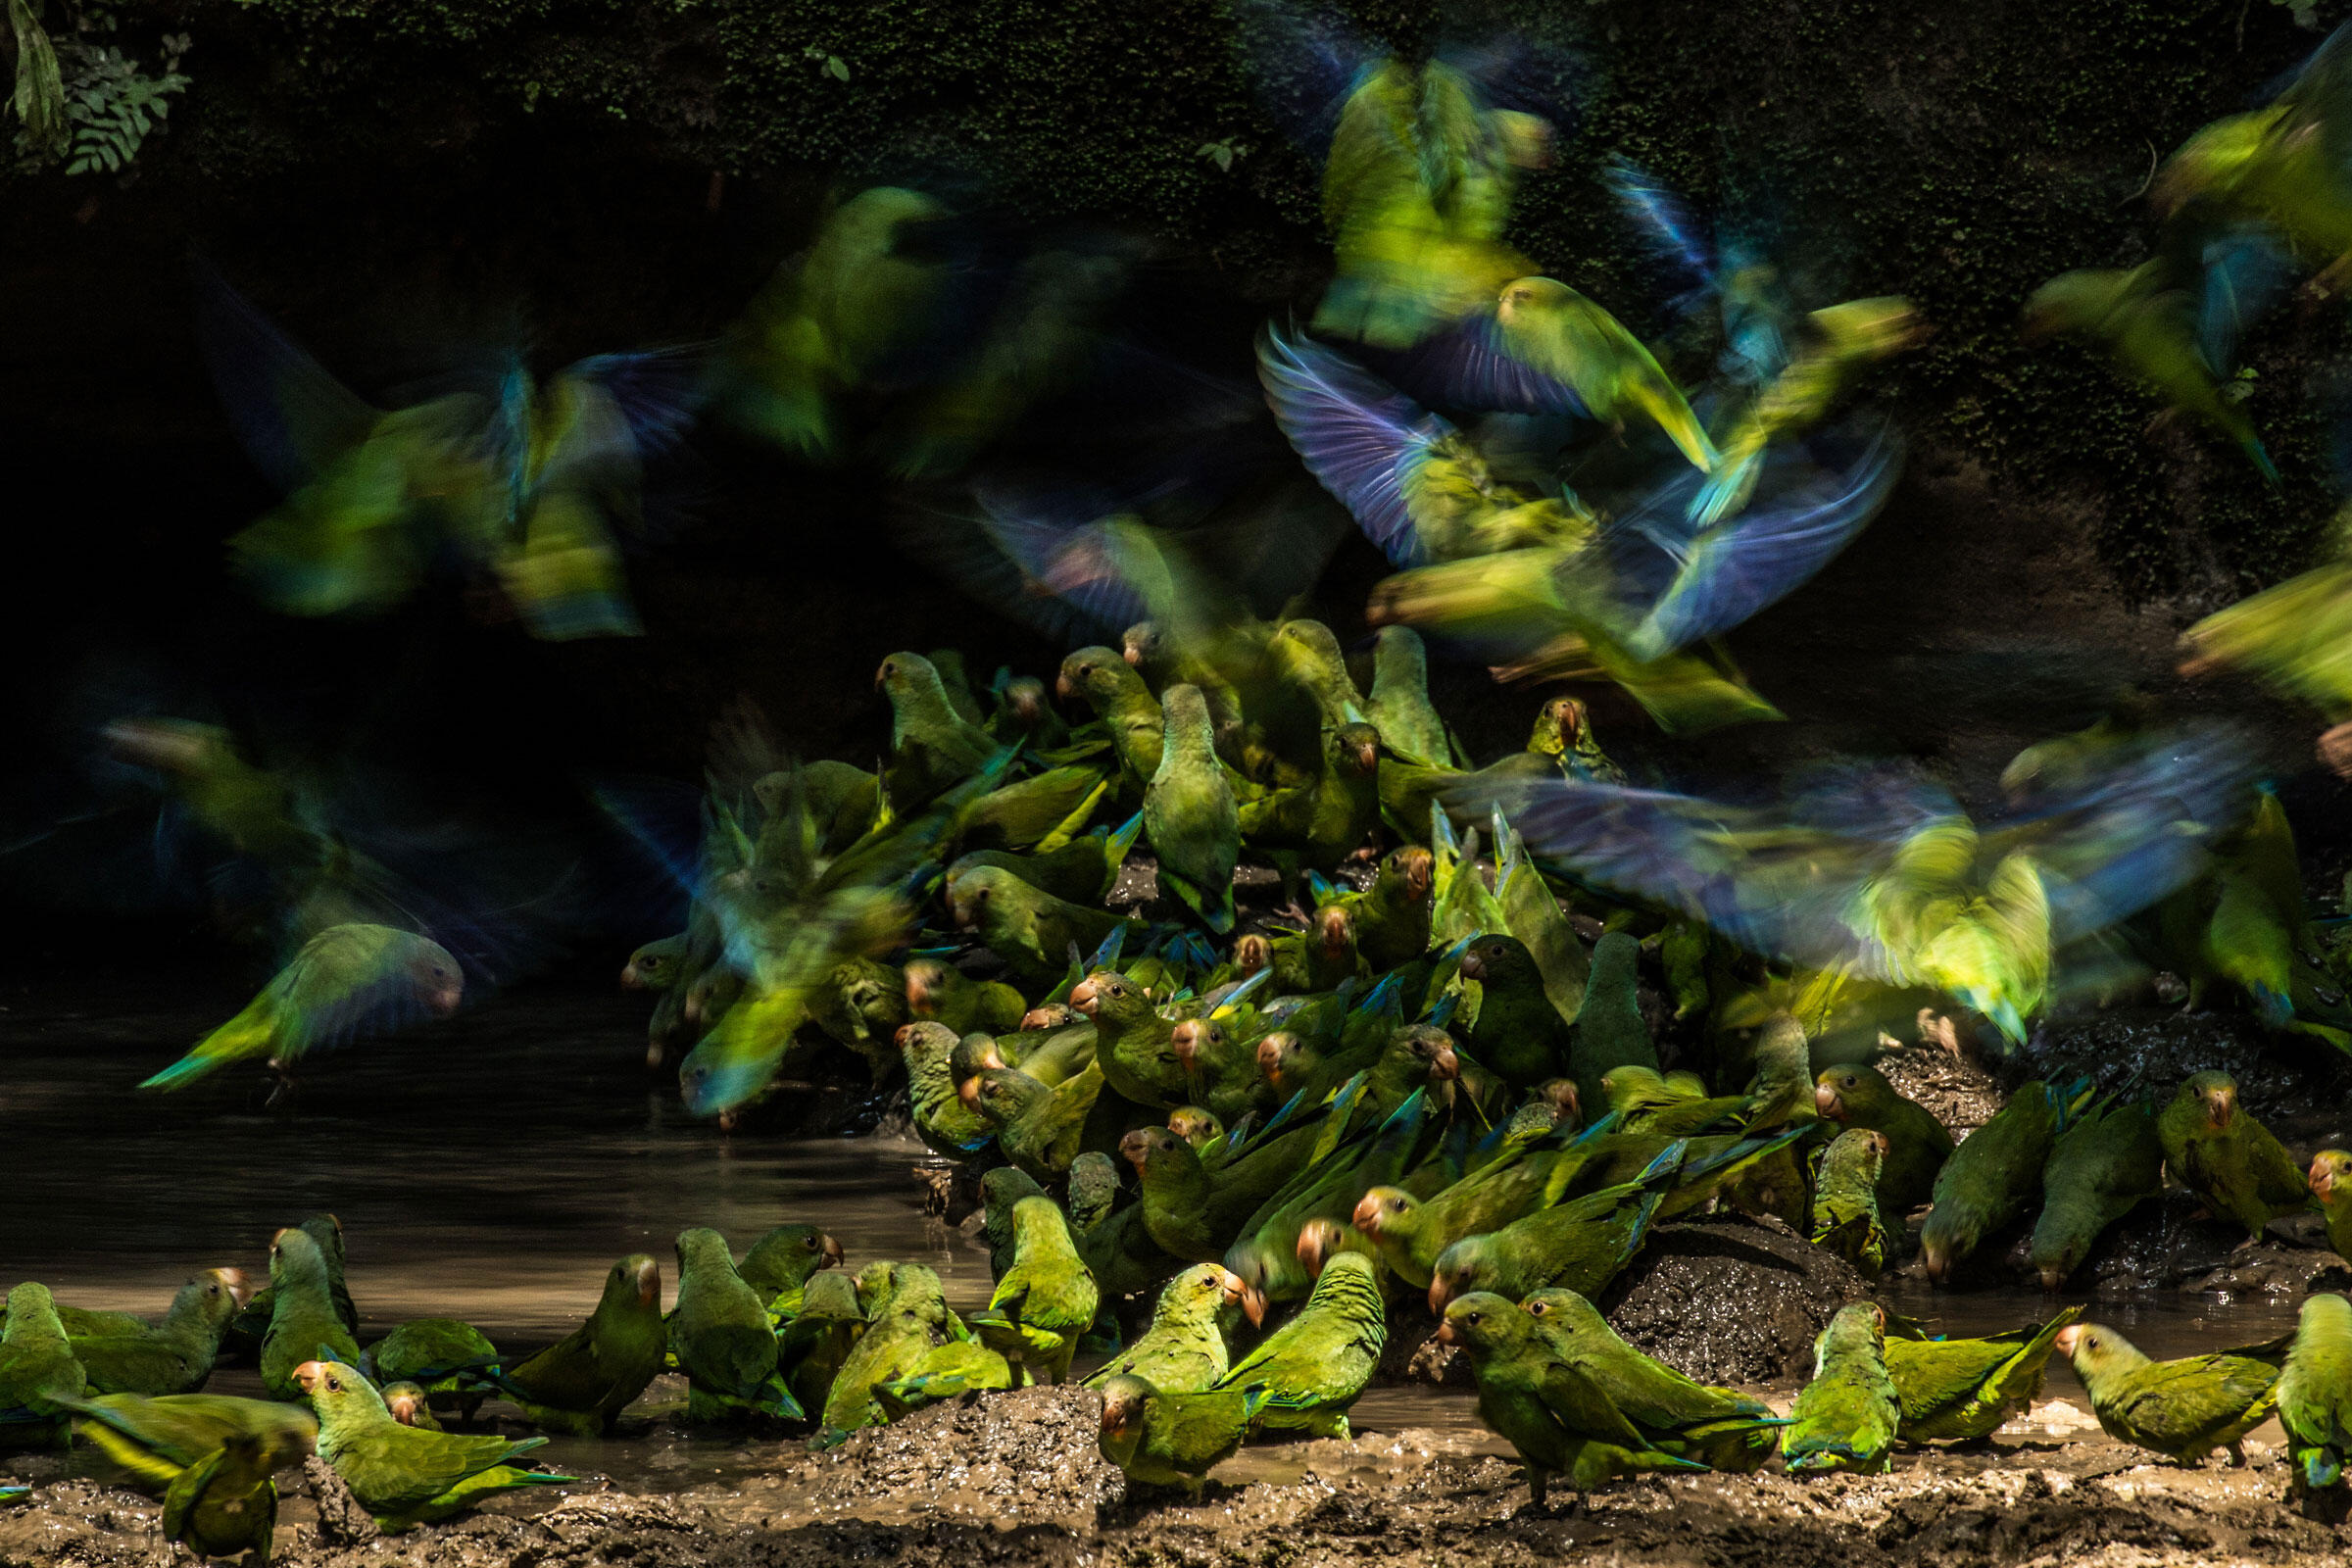 Gertsman's image of Cobalt-winged Parakeets gathering around a clay lick won the Youth category and landed on the cover of Audubon's Summer issue. Liron Gertsman/Audubon Photography Awards